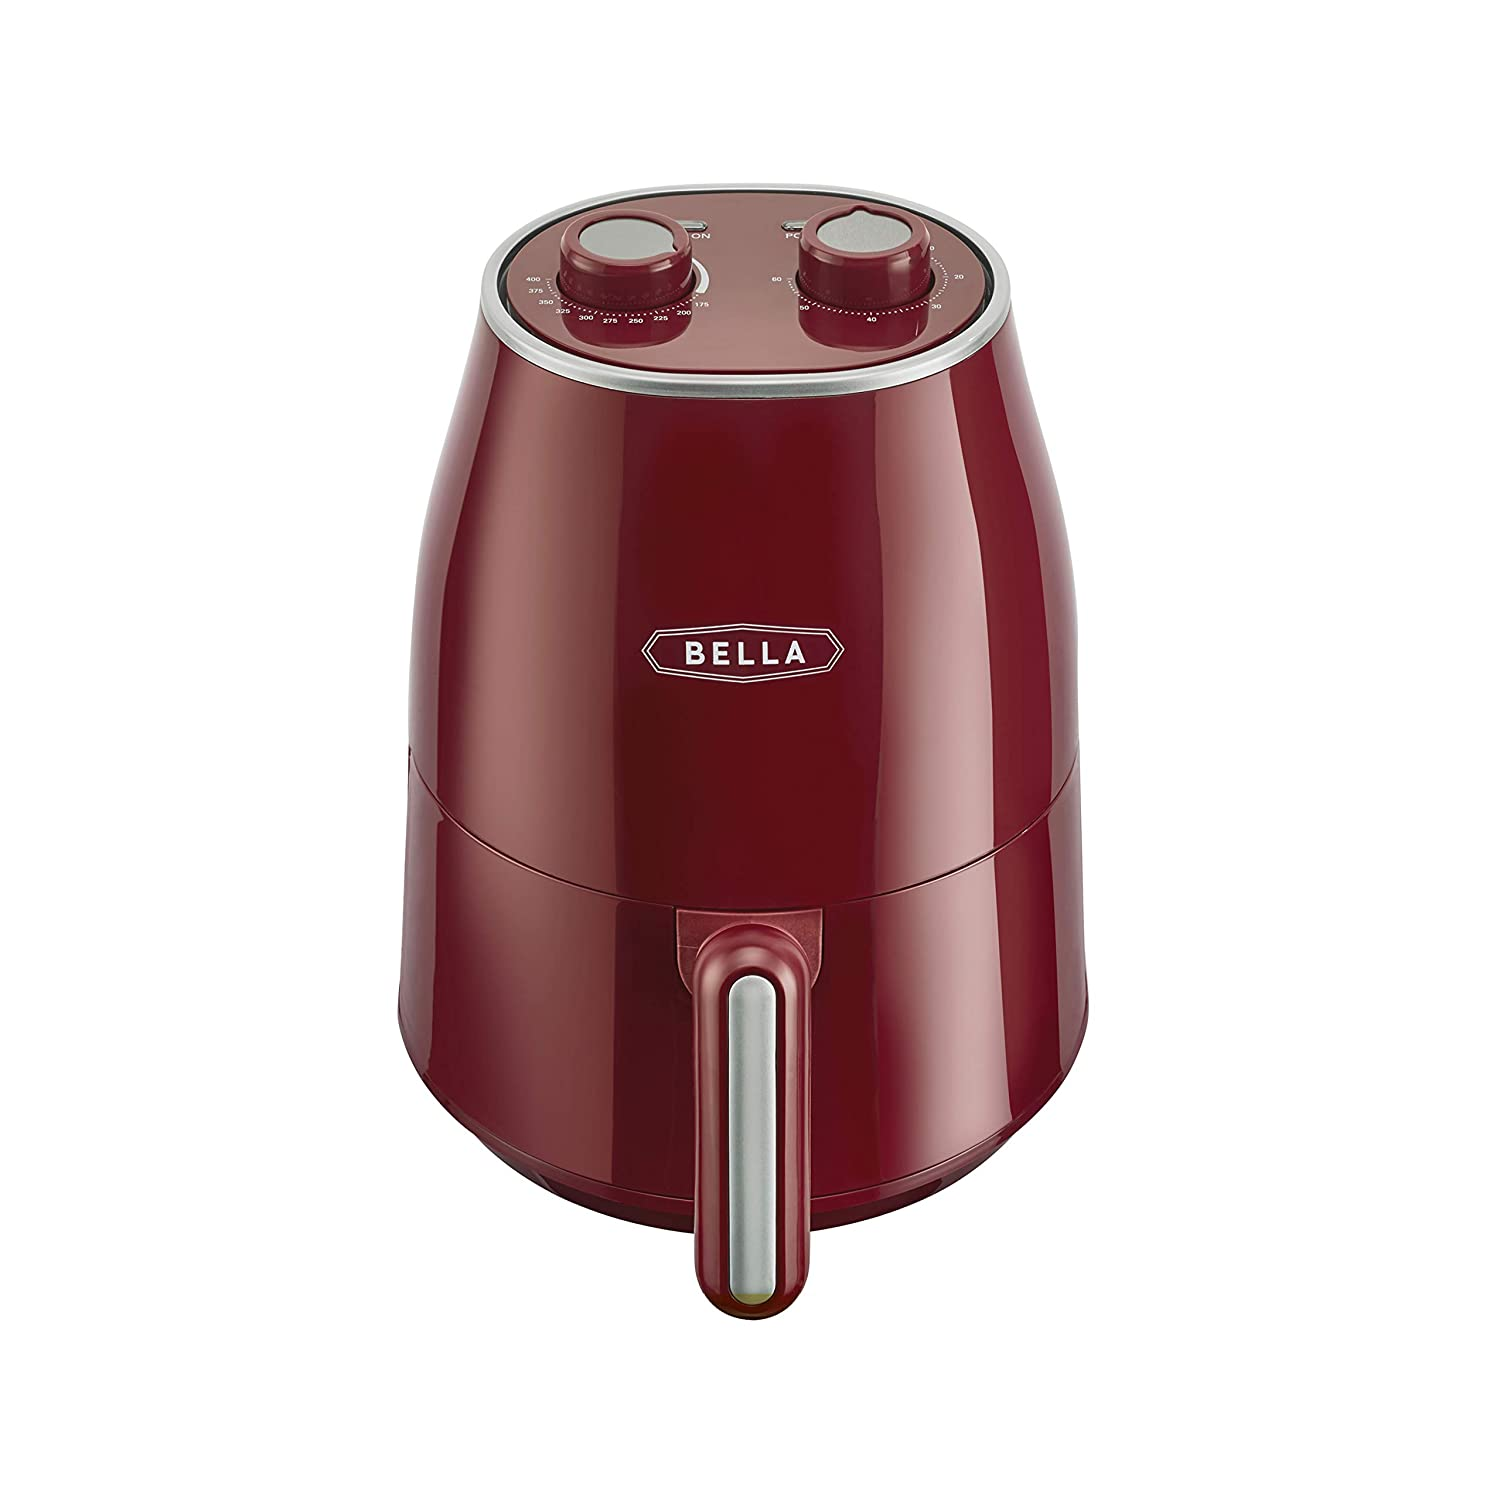 BELLA 14778 1.6 QT, Red Air Convection Fryer, Quart